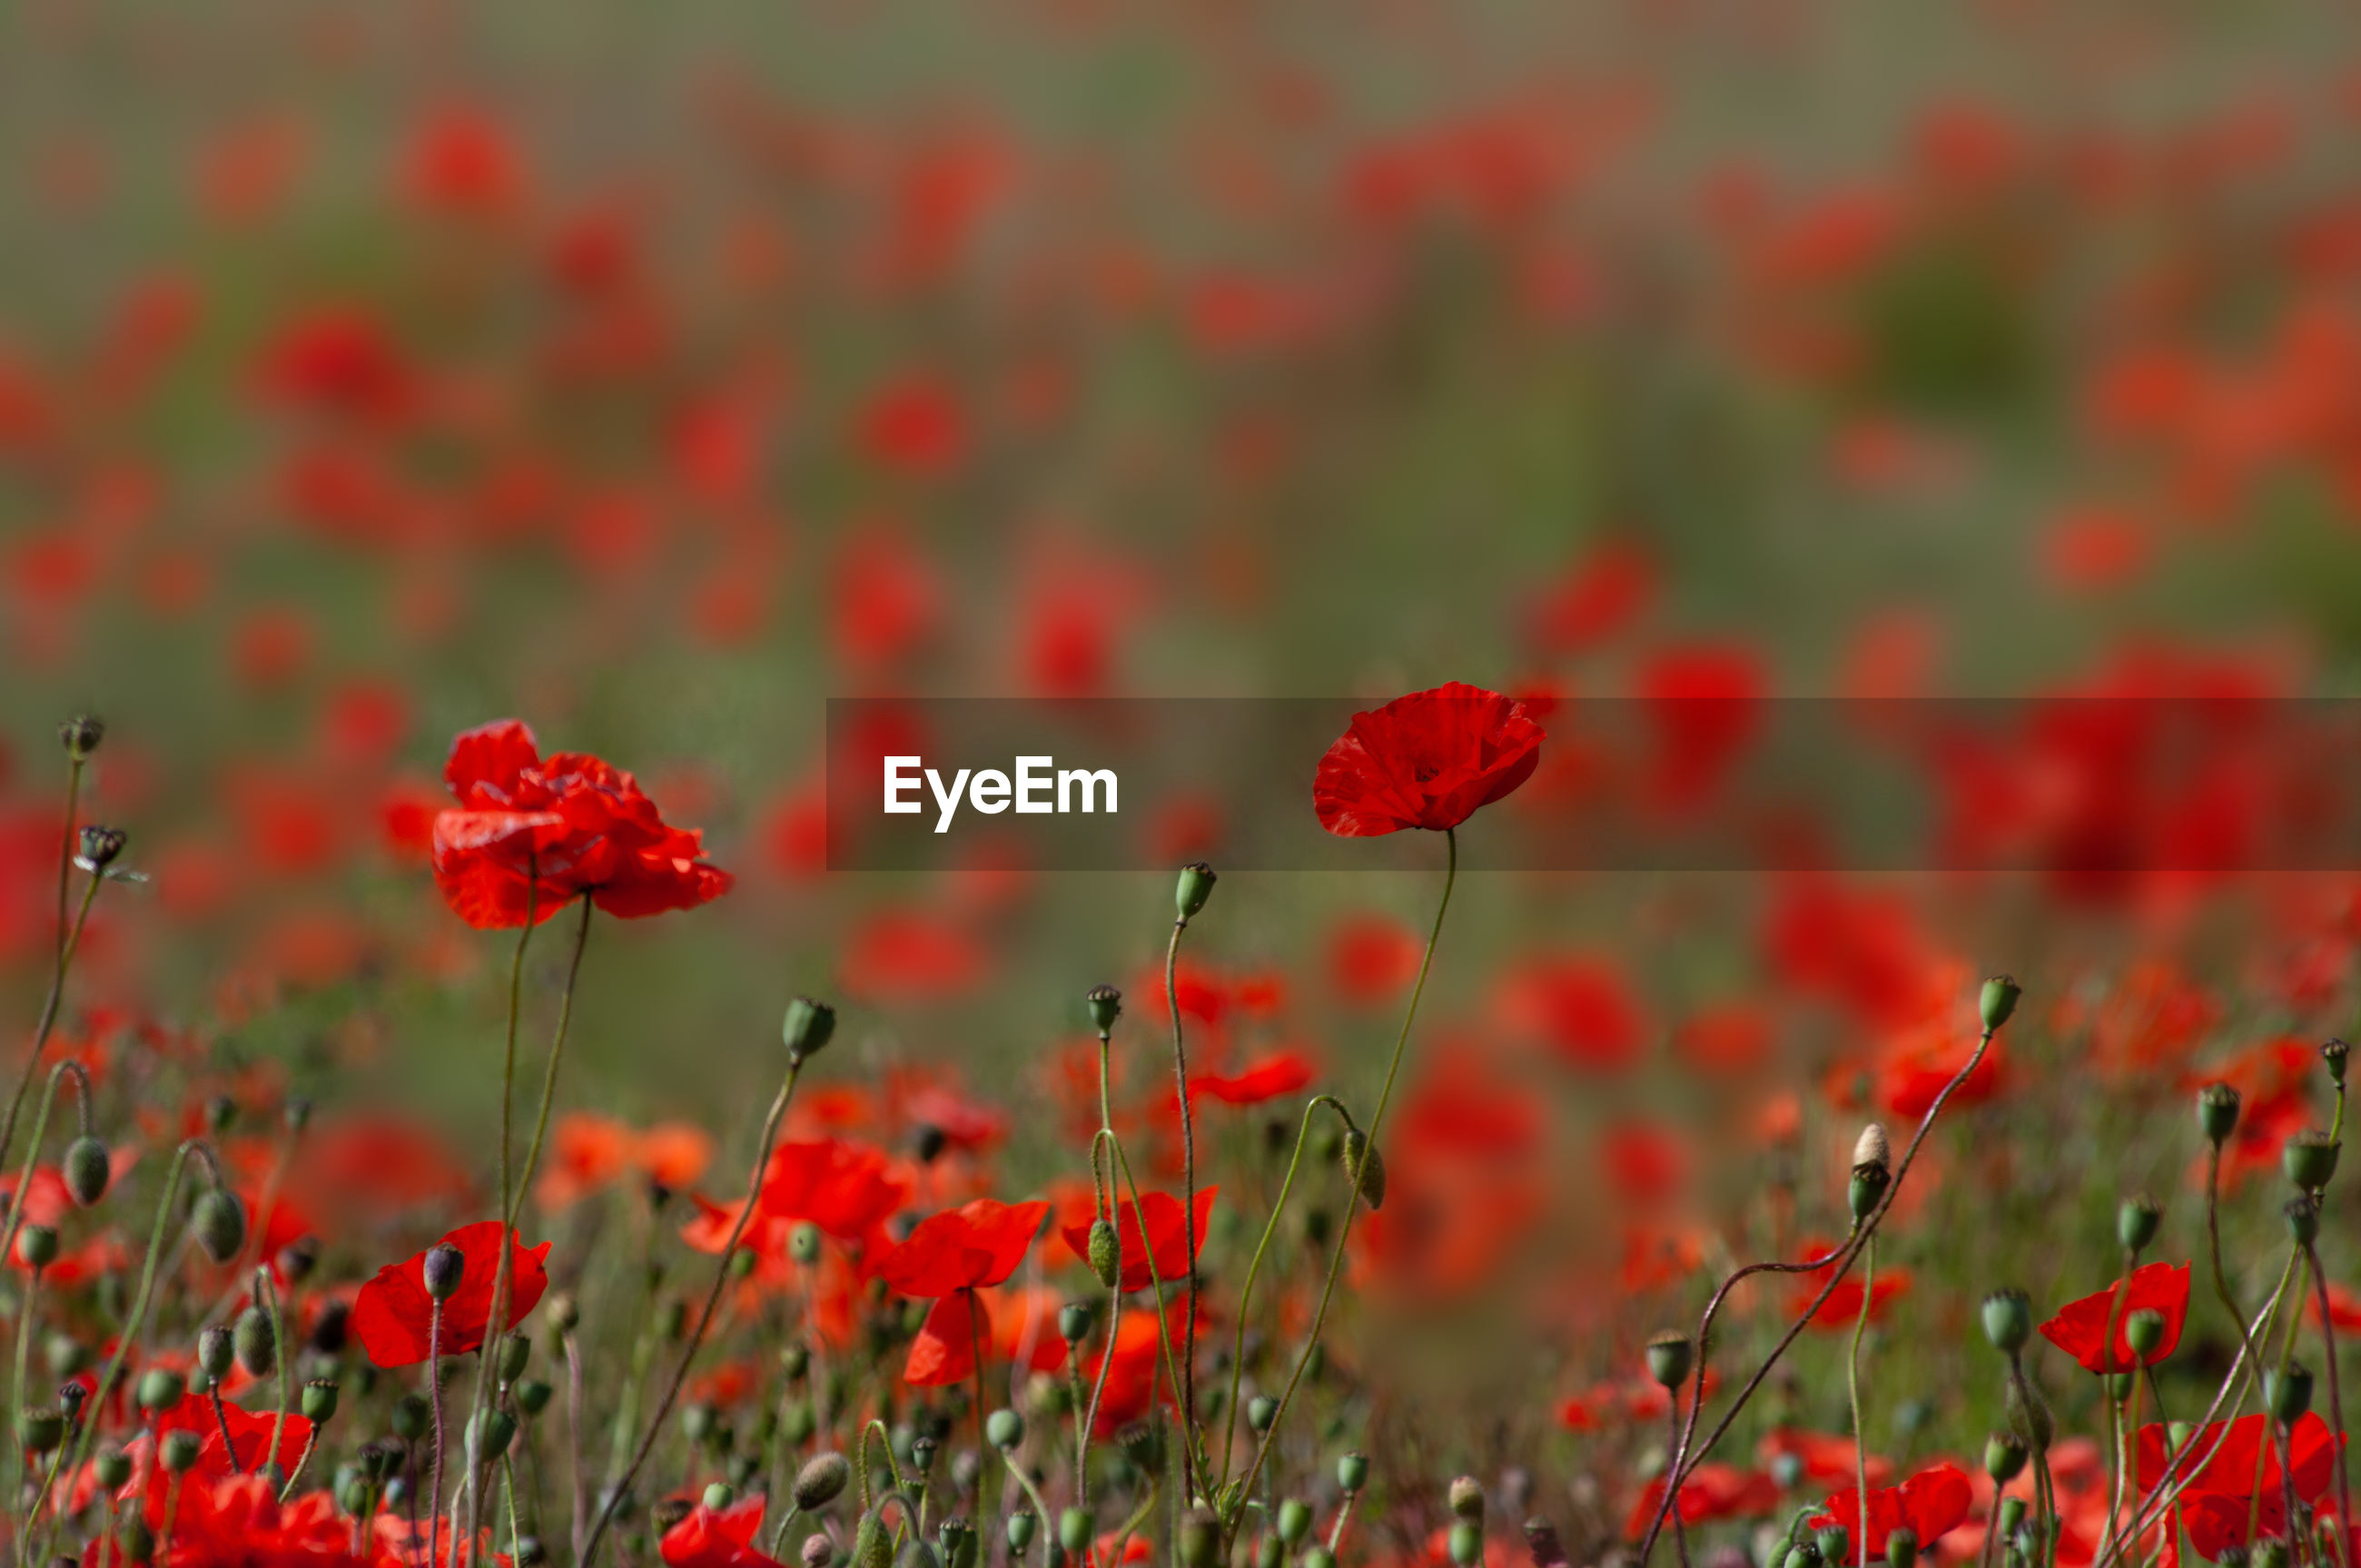 CLOSE-UP OF RED POPPIES ON FIELD